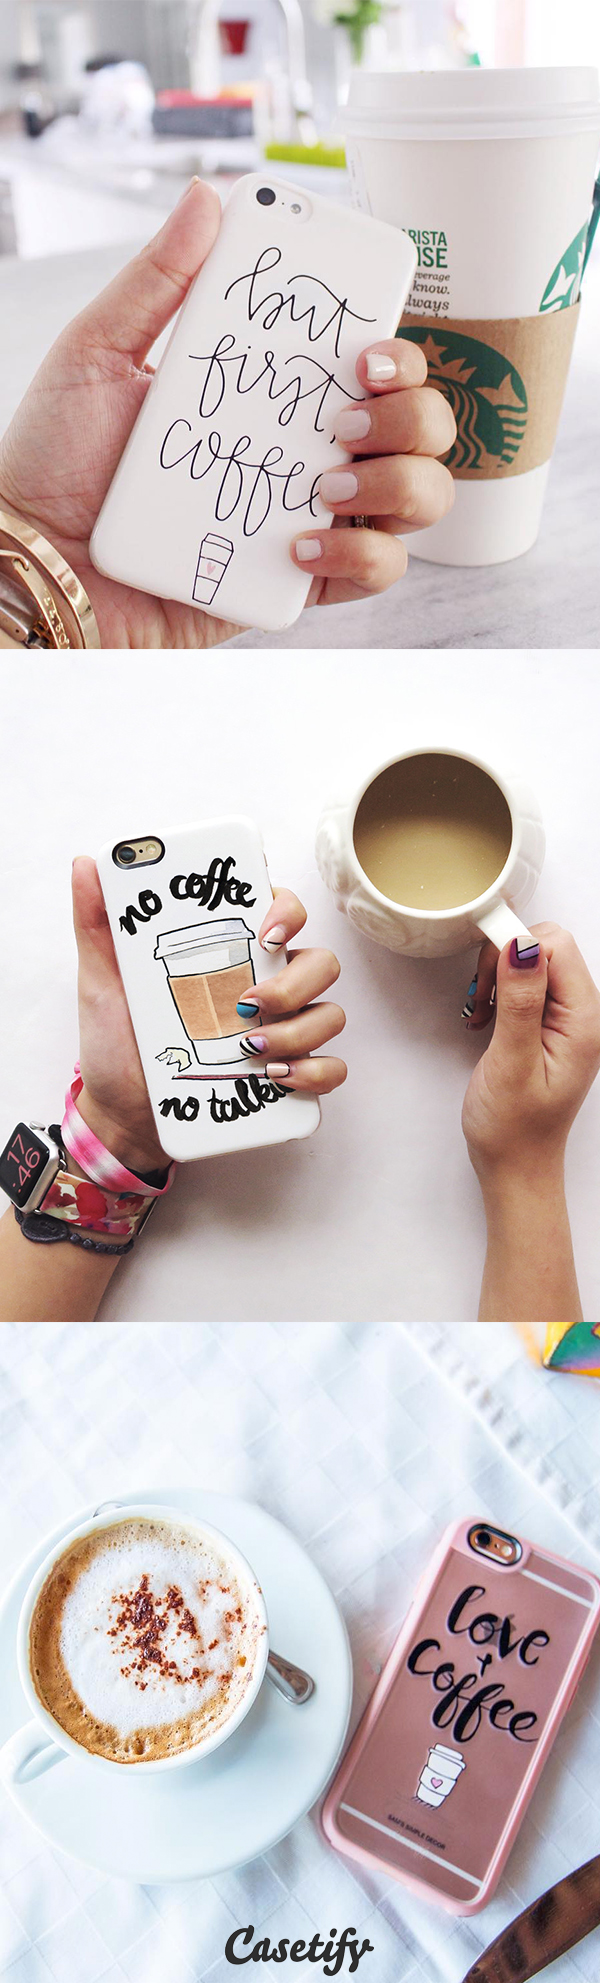 All time favourite Coffee iPhone 6 protective phone case designs | Click through to see more iphone phone case ideas >>> https://www.casetify.com/collections/iphone-6s-coffee-cases#/?device=iphone-6s | @casetify